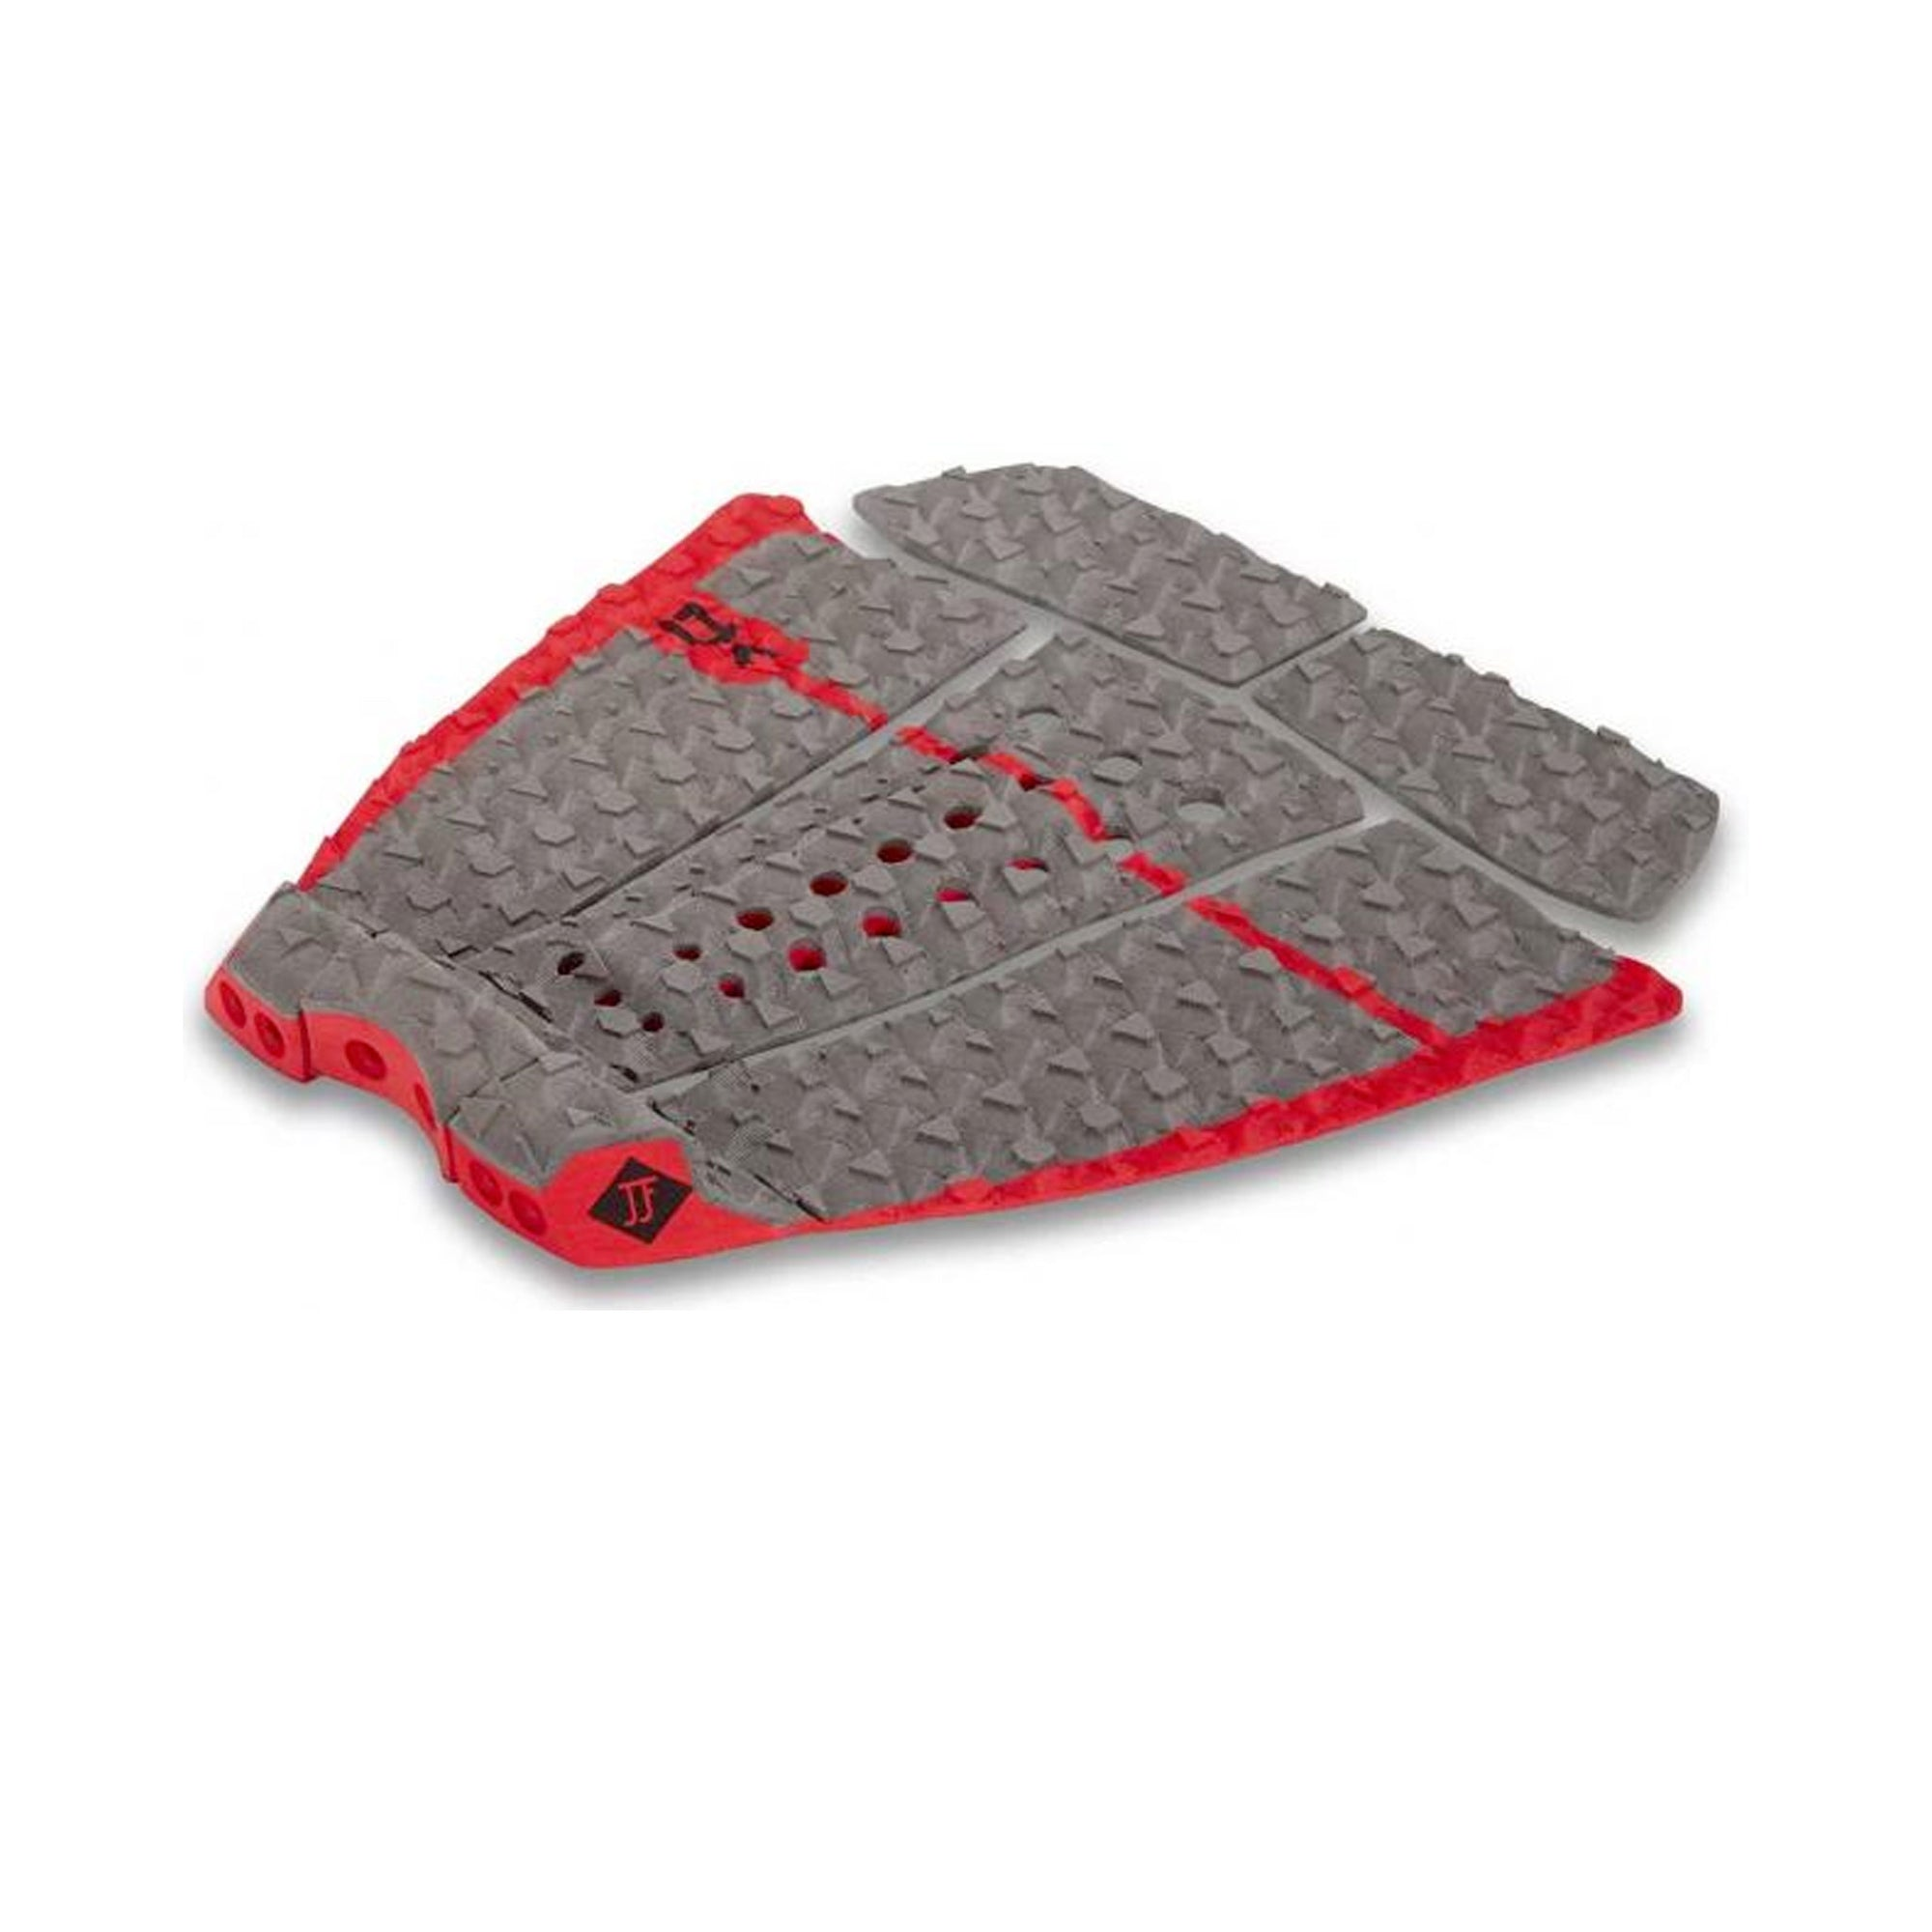 Dakine John John Florence Friendly Foam Arch Traction Pad - Carbon/Red